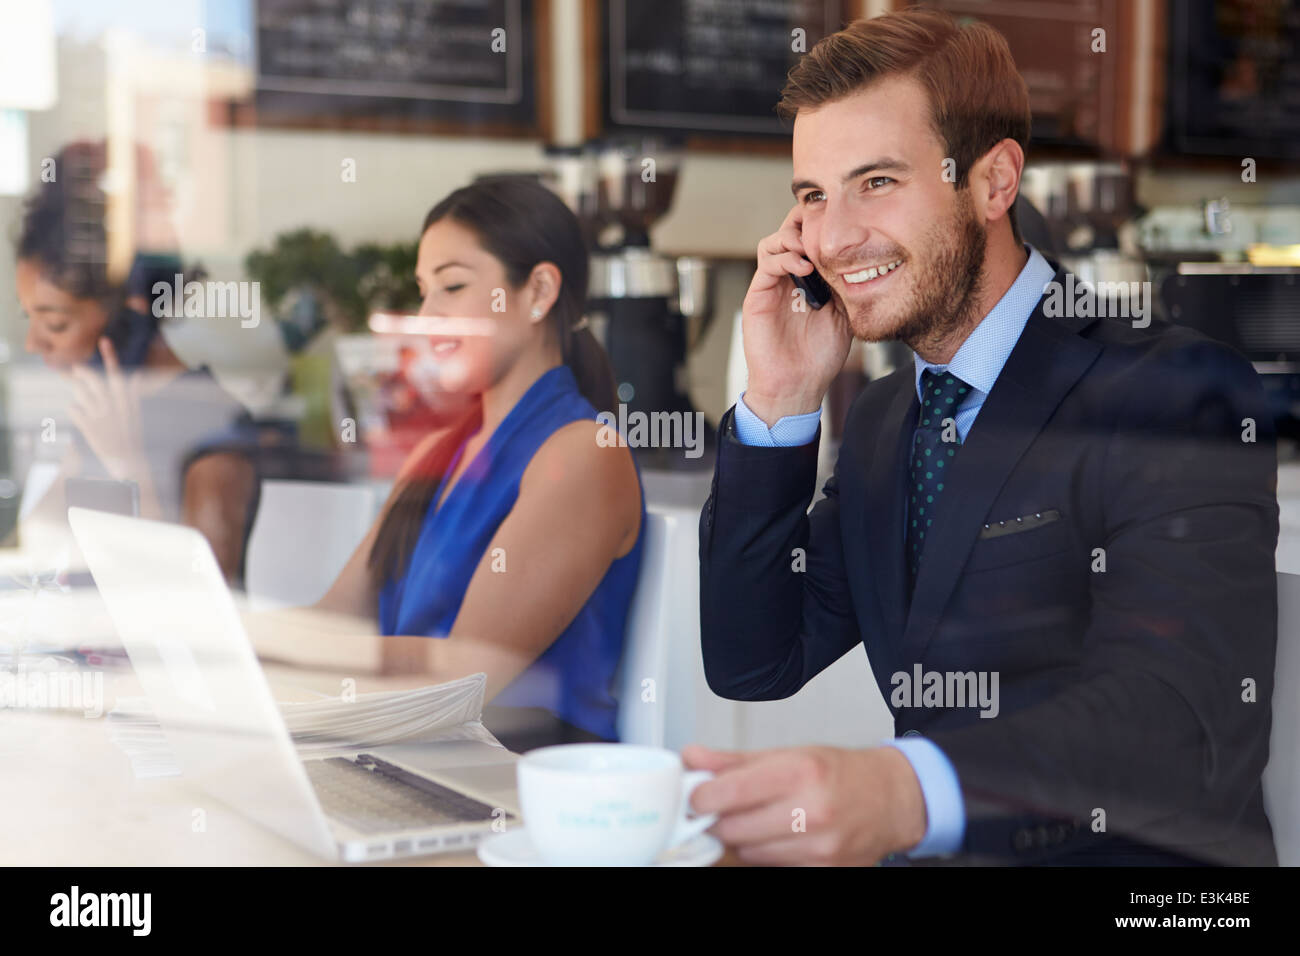 Businessman Using Mobile Phone and Laptop in Coffee Shop Banque D'Images